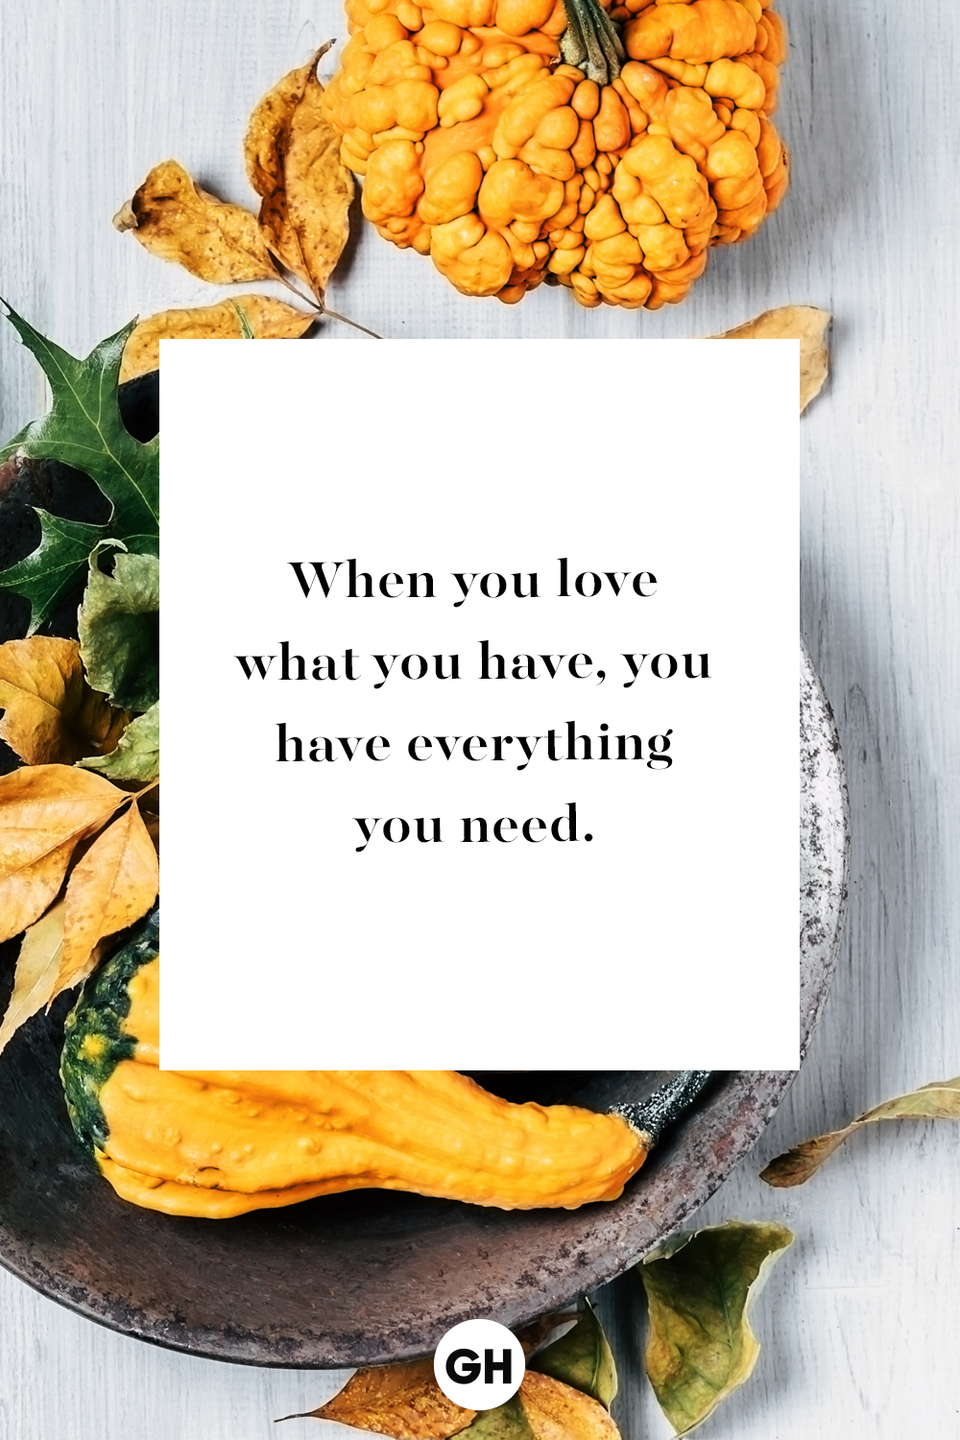 <p>When you love what you have, you have everything you need.</p>